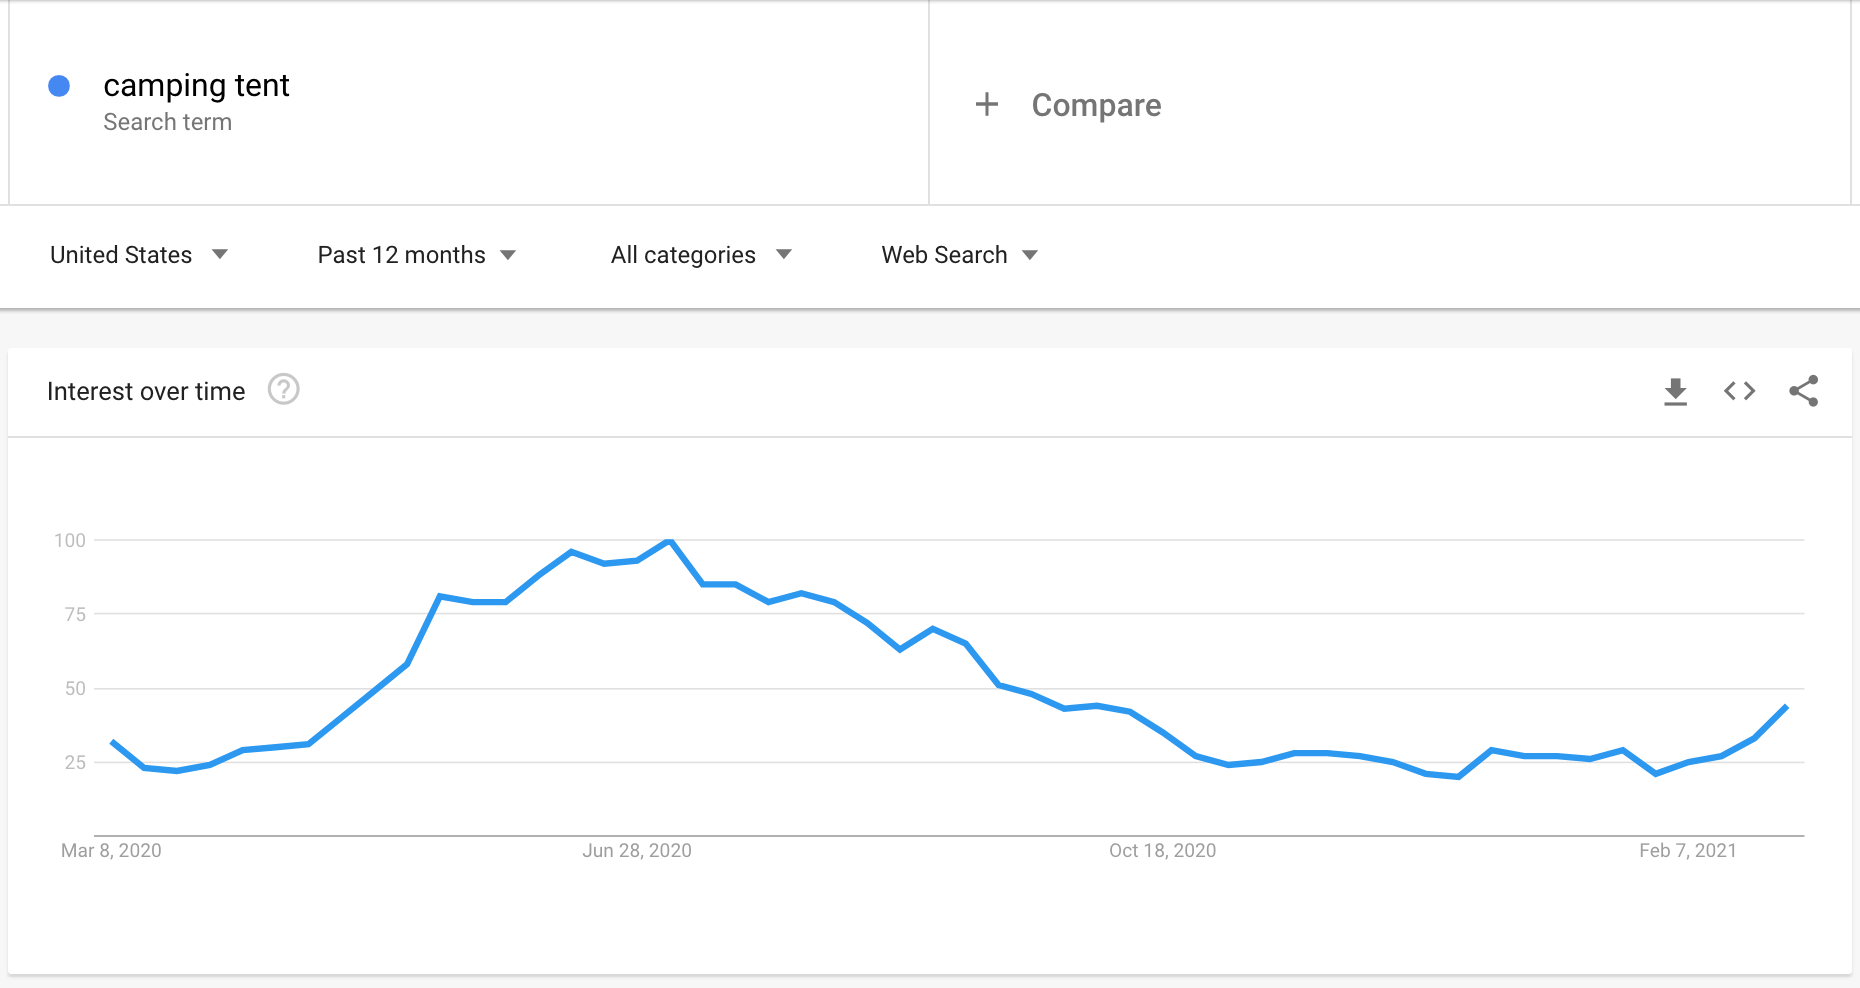 Google Trends graph showing the interest in camping tents